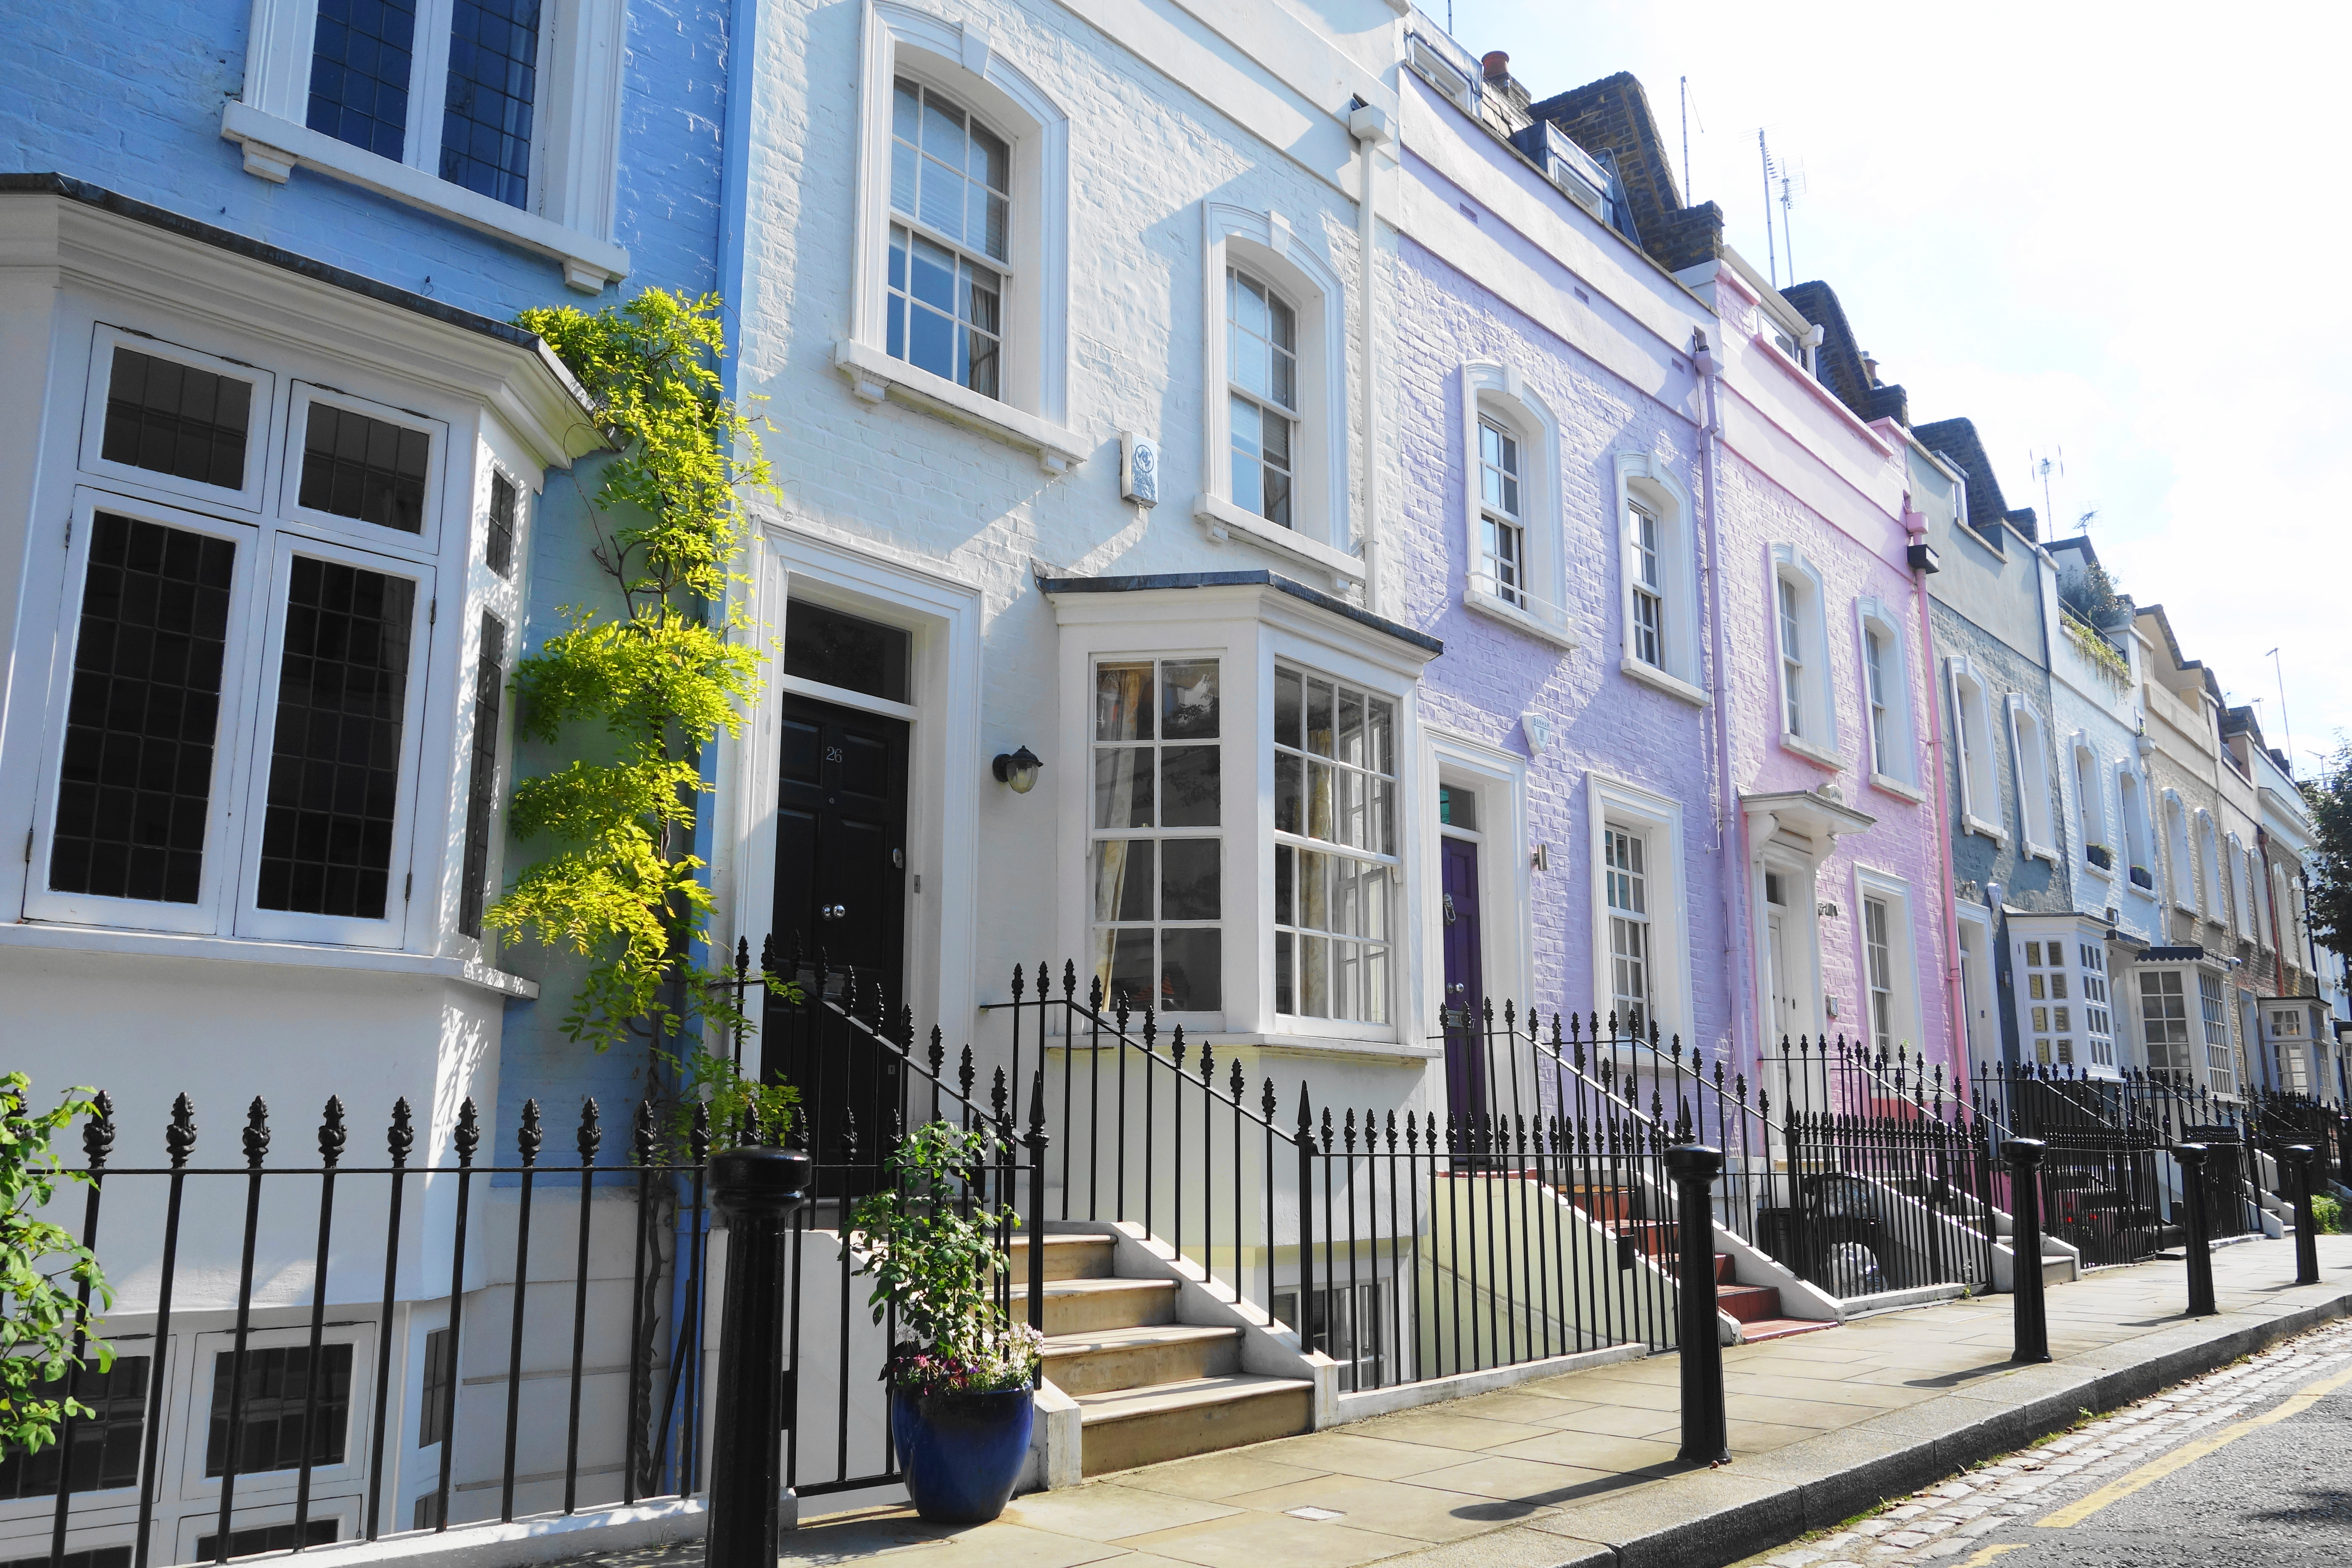 London Buy to Let Mortgages in 2015